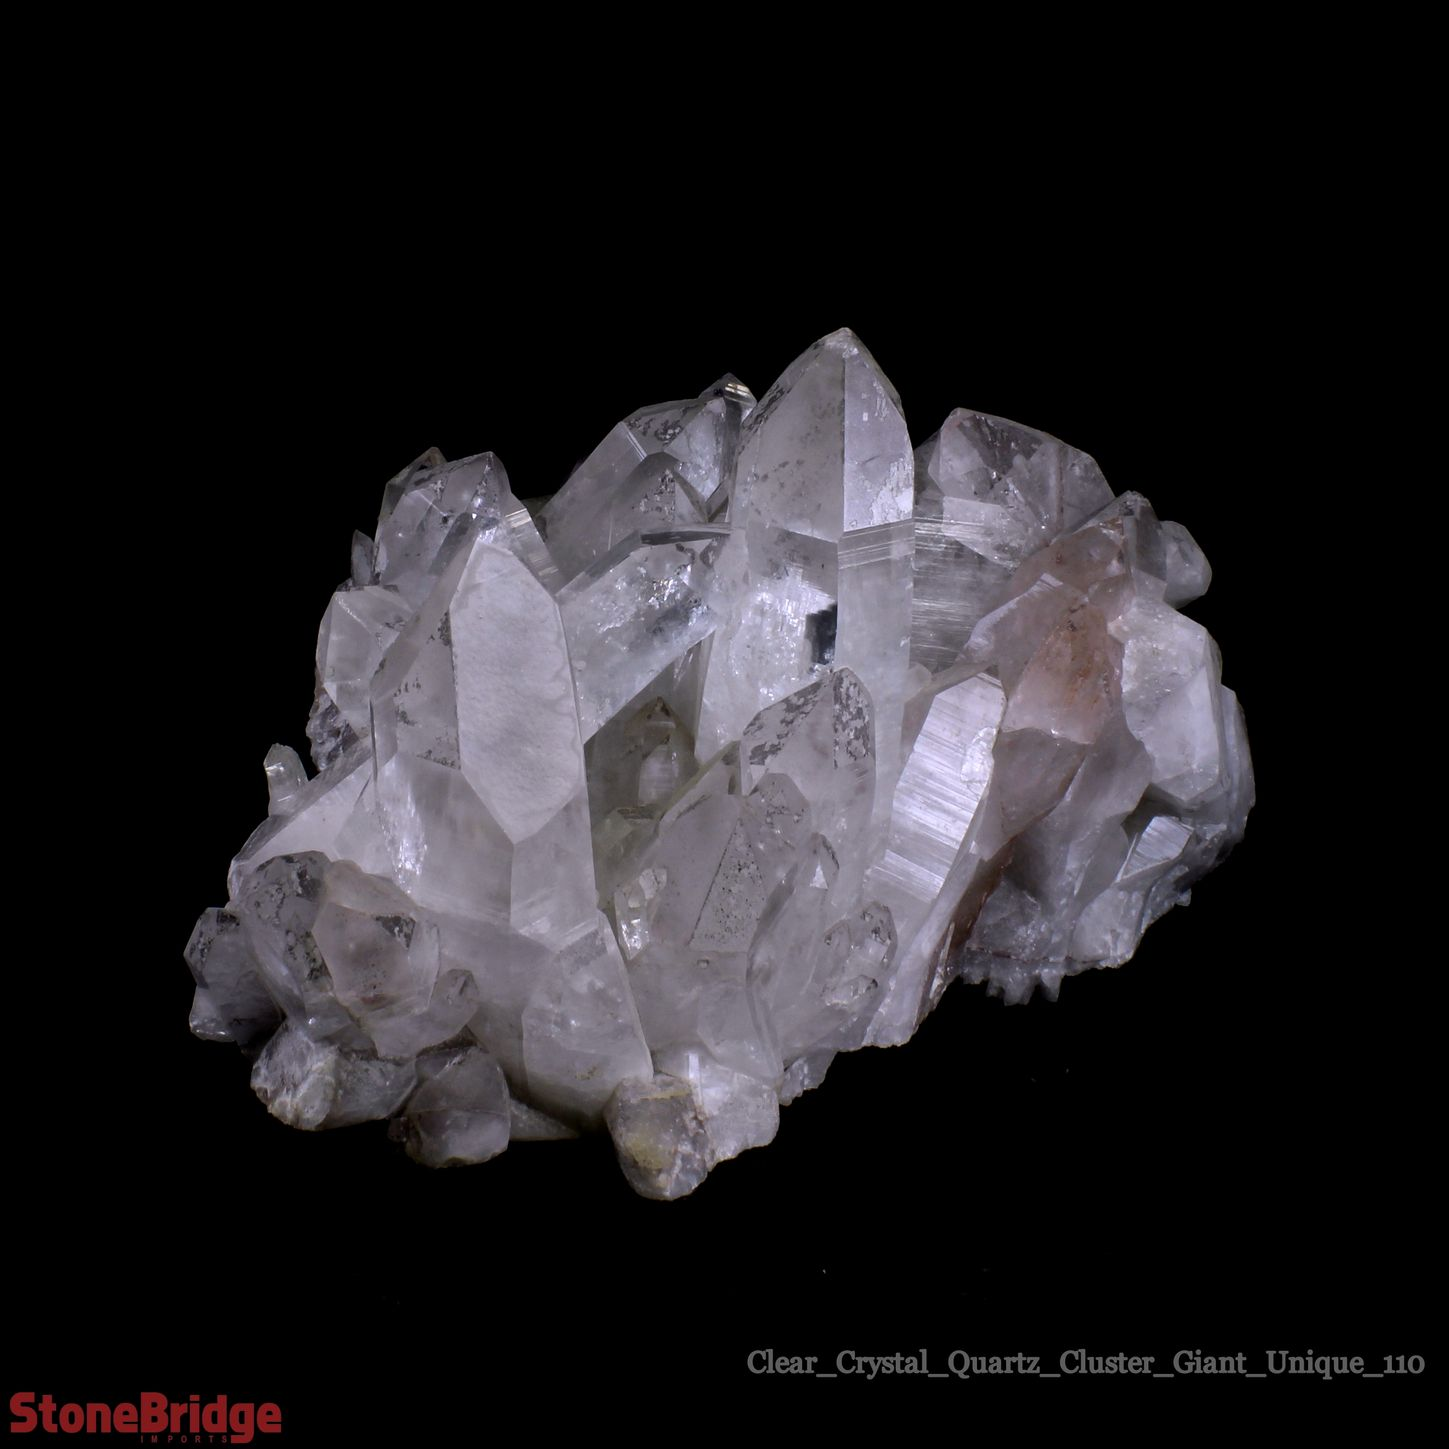 CLCRU110_Clear_Crystal_Quartz_Cluster_Giant_Unique_11015.jpg